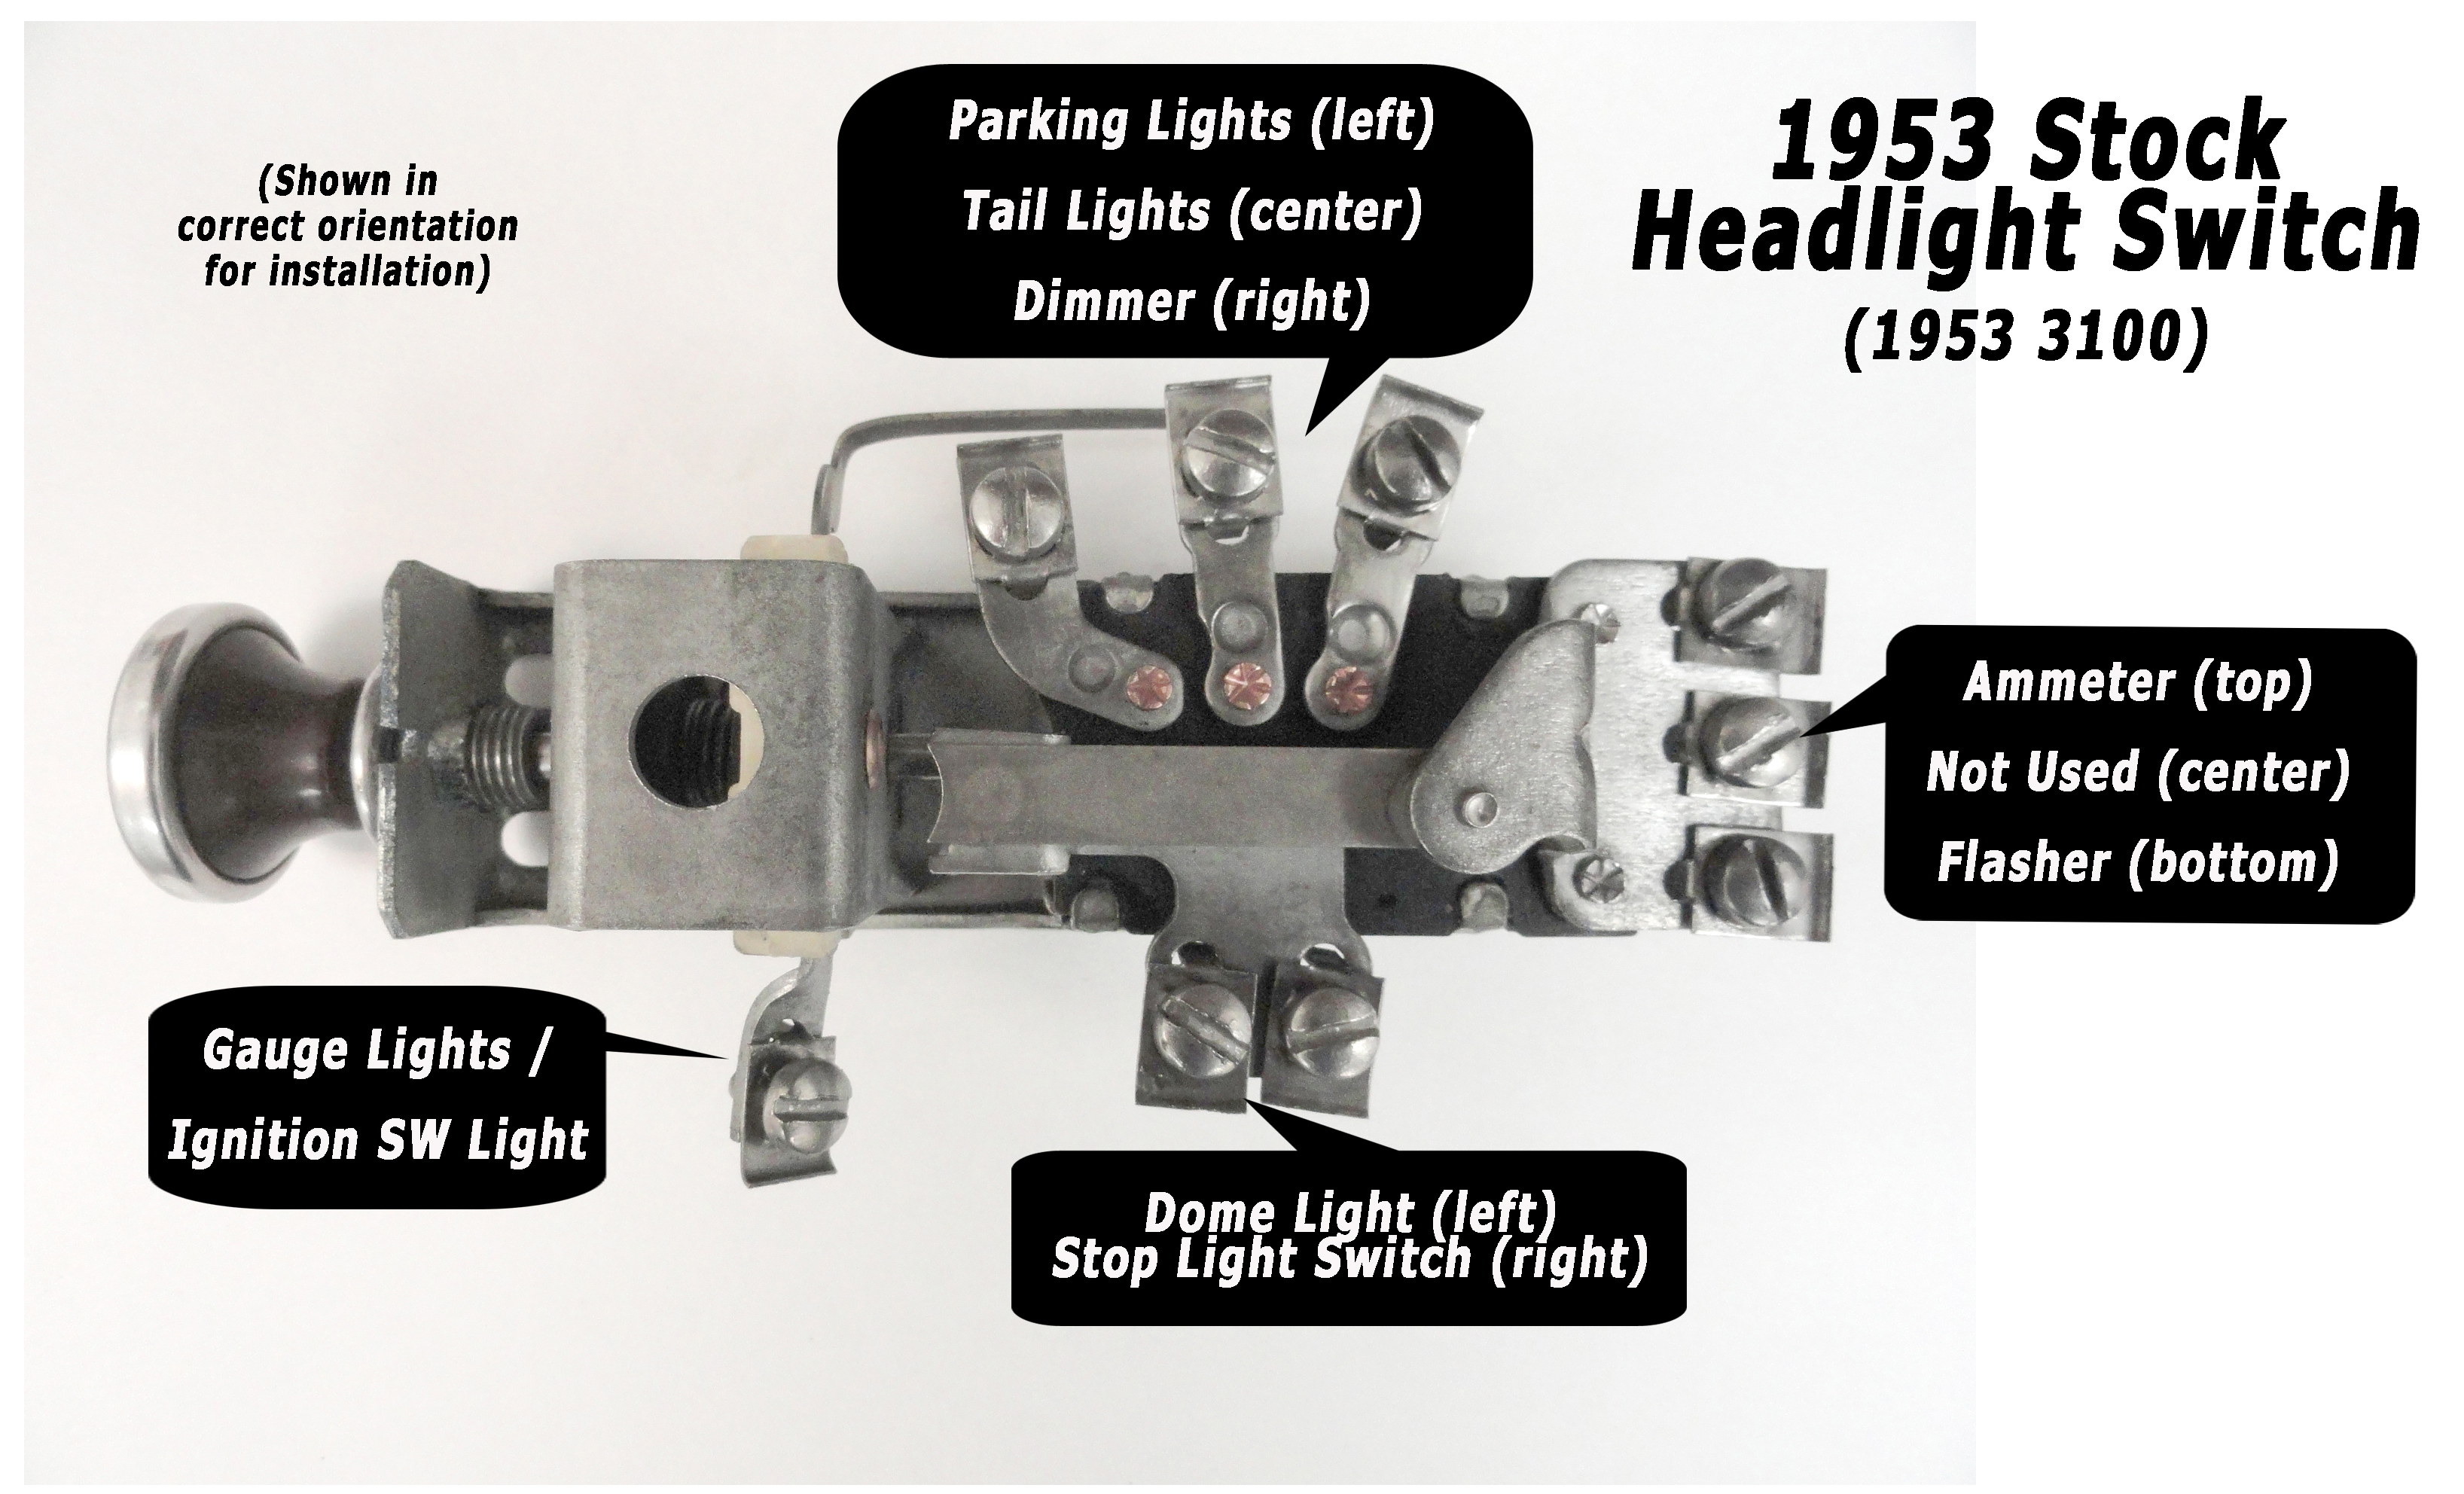 3 Terminal Ignition Switch Wiring Diagram Library On Three Way Making The Proper Connection Headlight Classic Parts Talk Rh Classicparts Com Dimmer